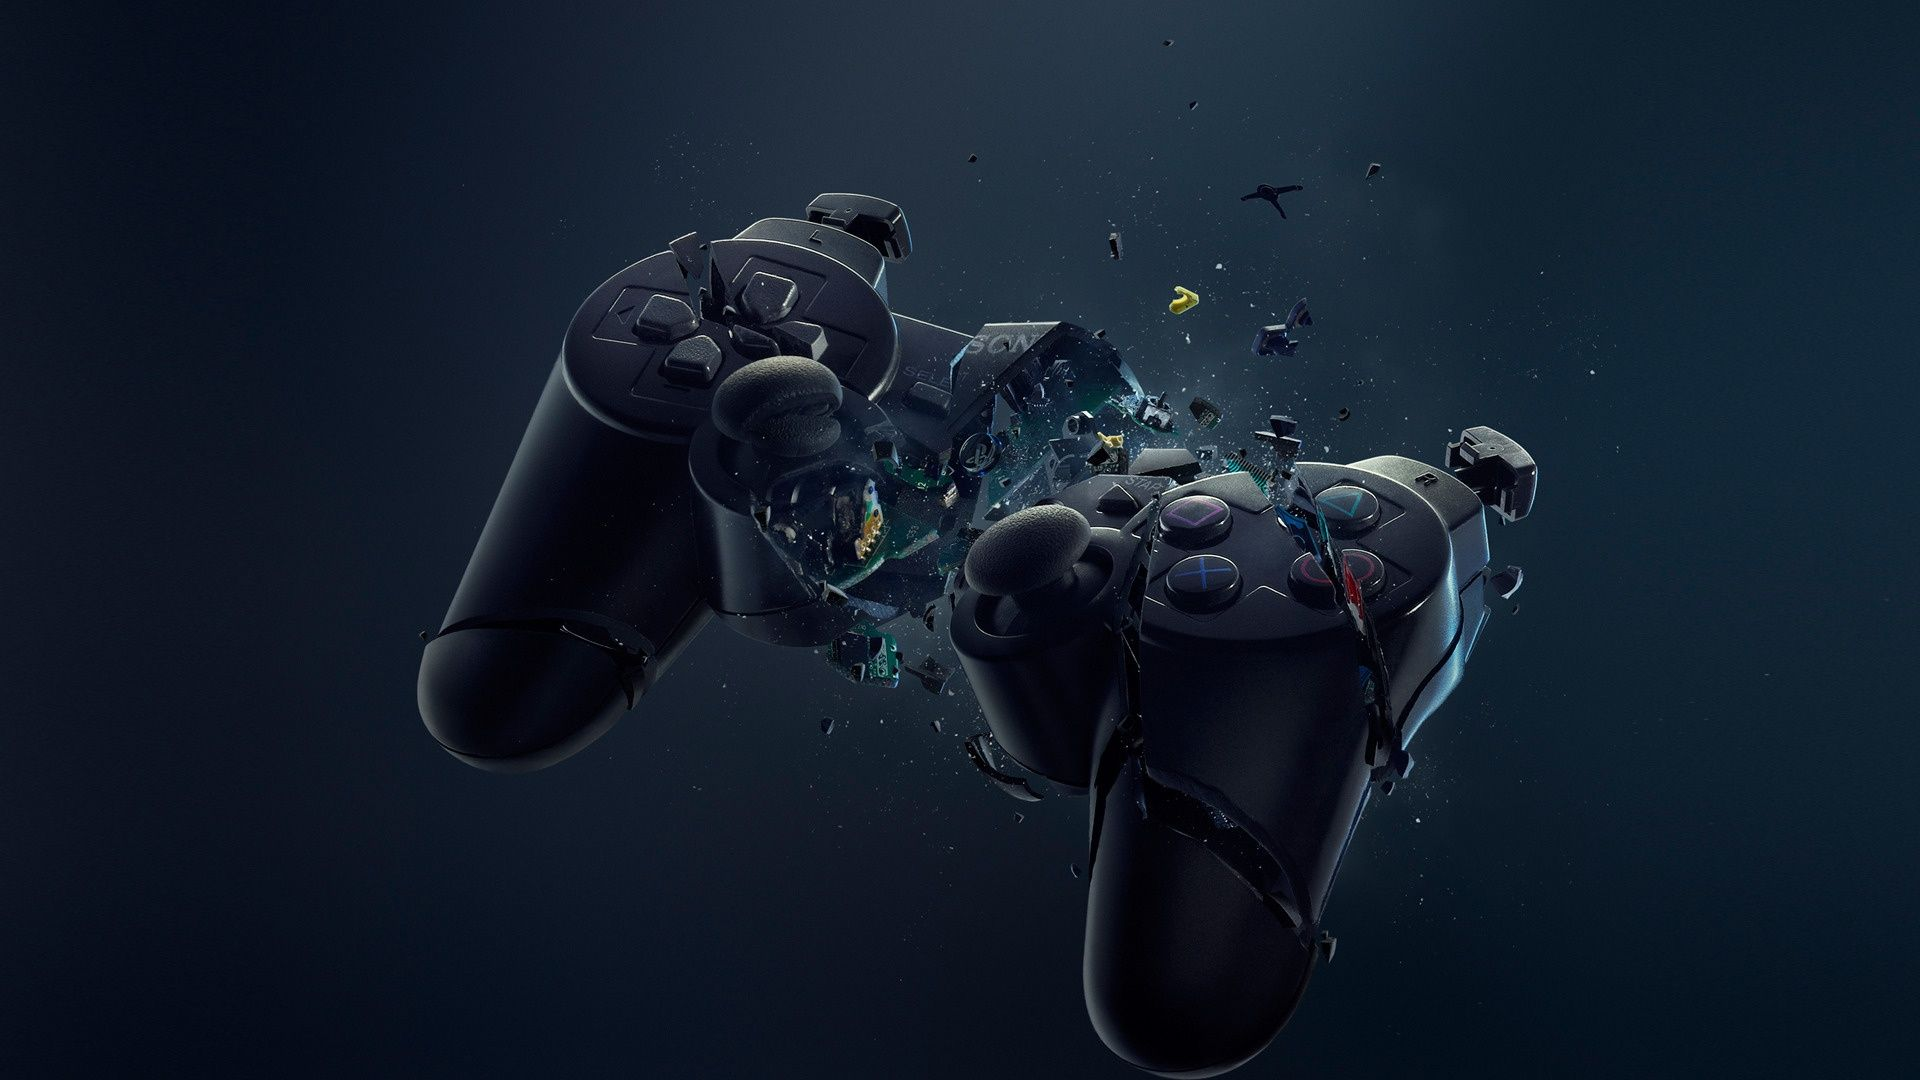 Ps3 Controller Gaming Wallpapers Mobile Wallpaper Android 2048x1152 Wallpapers